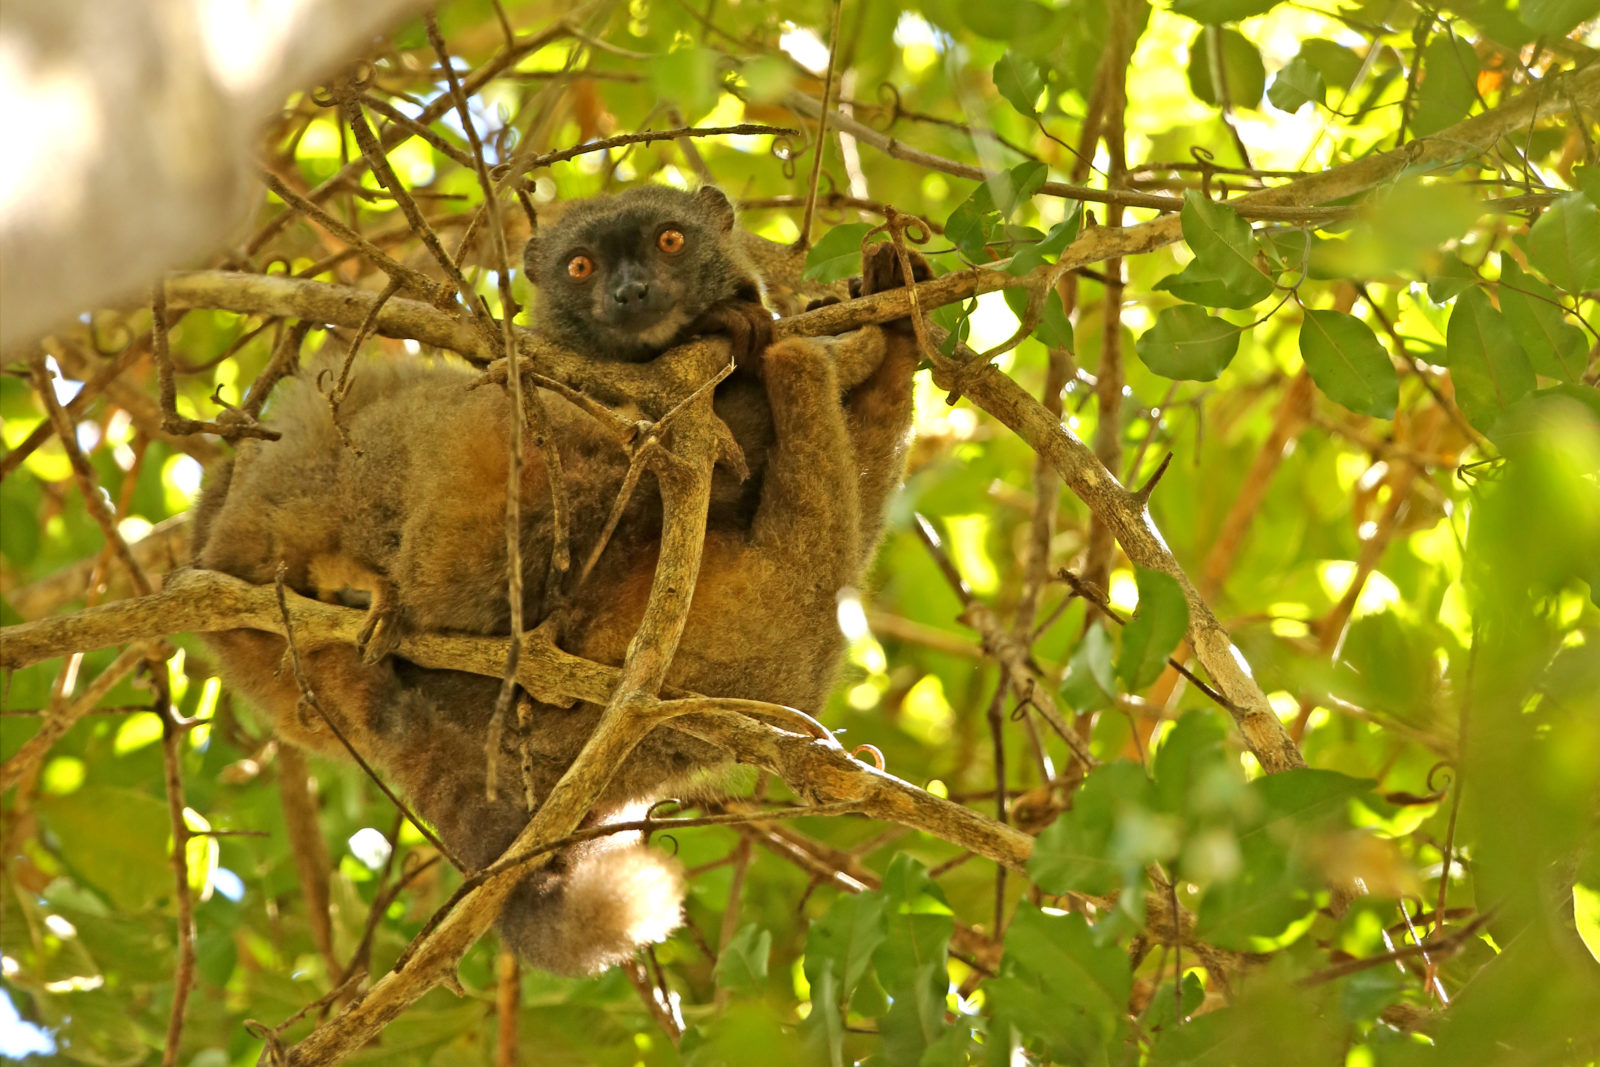 Sandford's brown lemur